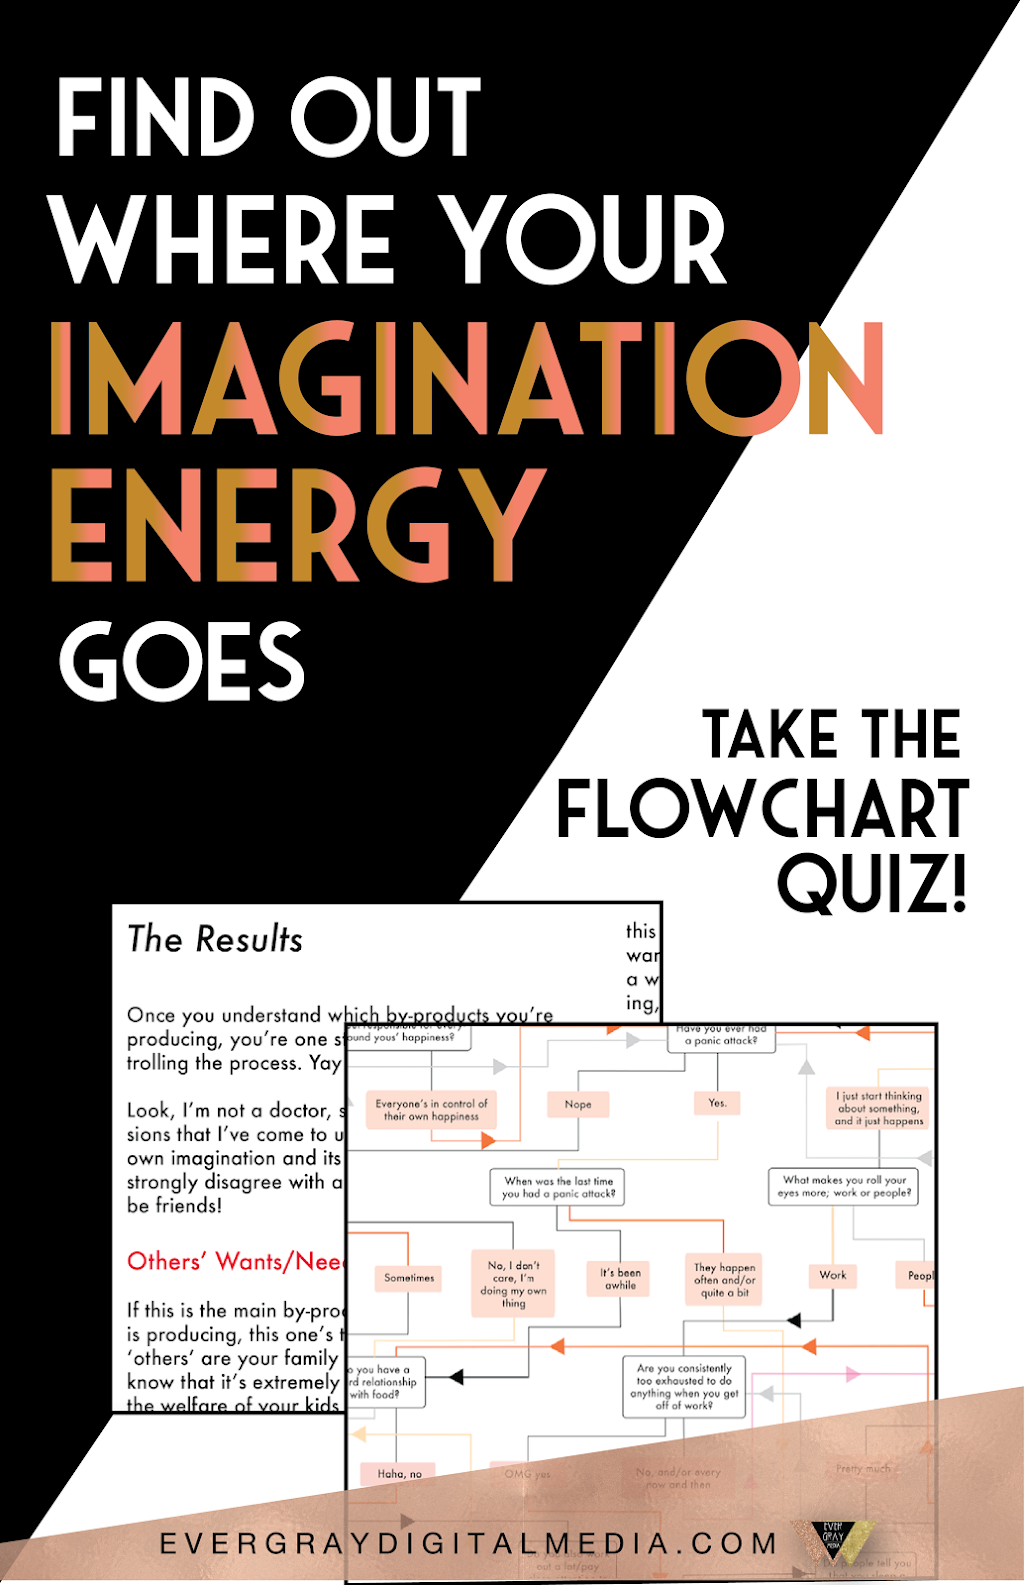 Ever wonder where all of that active imagination energy goes? It could go to creative projects, social activities - even anxiety. Take the Imagination By-Products Flowchart Quiz to find out! - Evergray Media